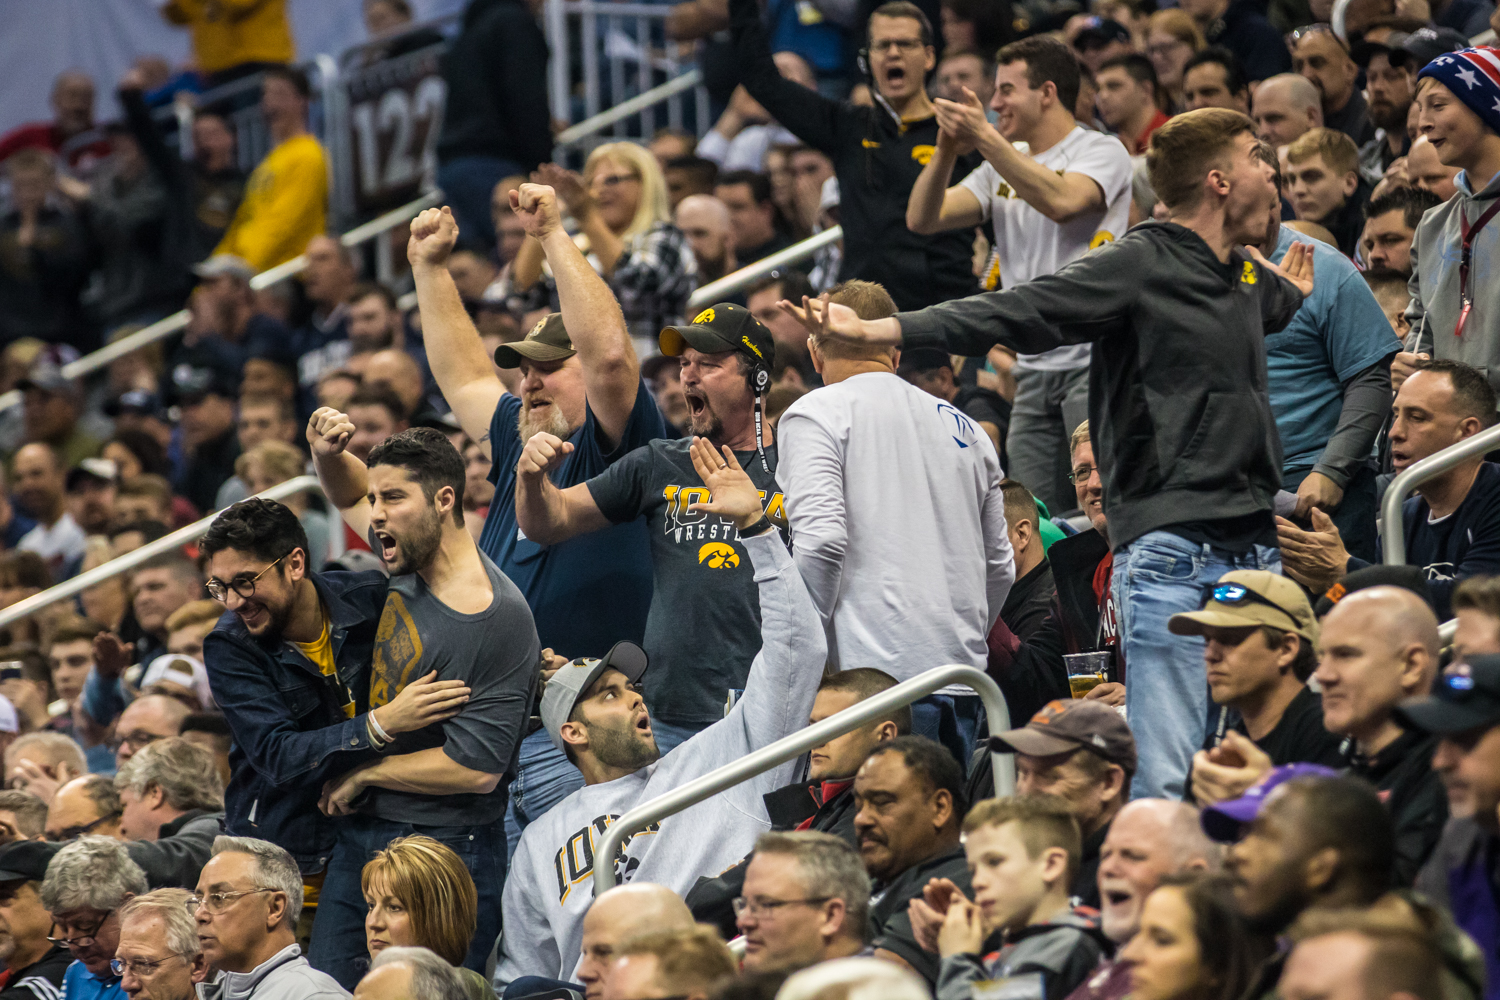 Iowa+fans+celebrate+a+call+in+Austin+DeSanto%27s+bout+with+Penn+State%27s+Roman+Bravo-Young+during+the+second+session+of+the+2019+NCAA+D1+Wrestling+Championships+at+PPG+Paints+Arena+in+Pittsburgh%2C+PA+on+Thursday%2C+March+21%2C+2019.+DeSanto+won+by+decision%2C+7-2.